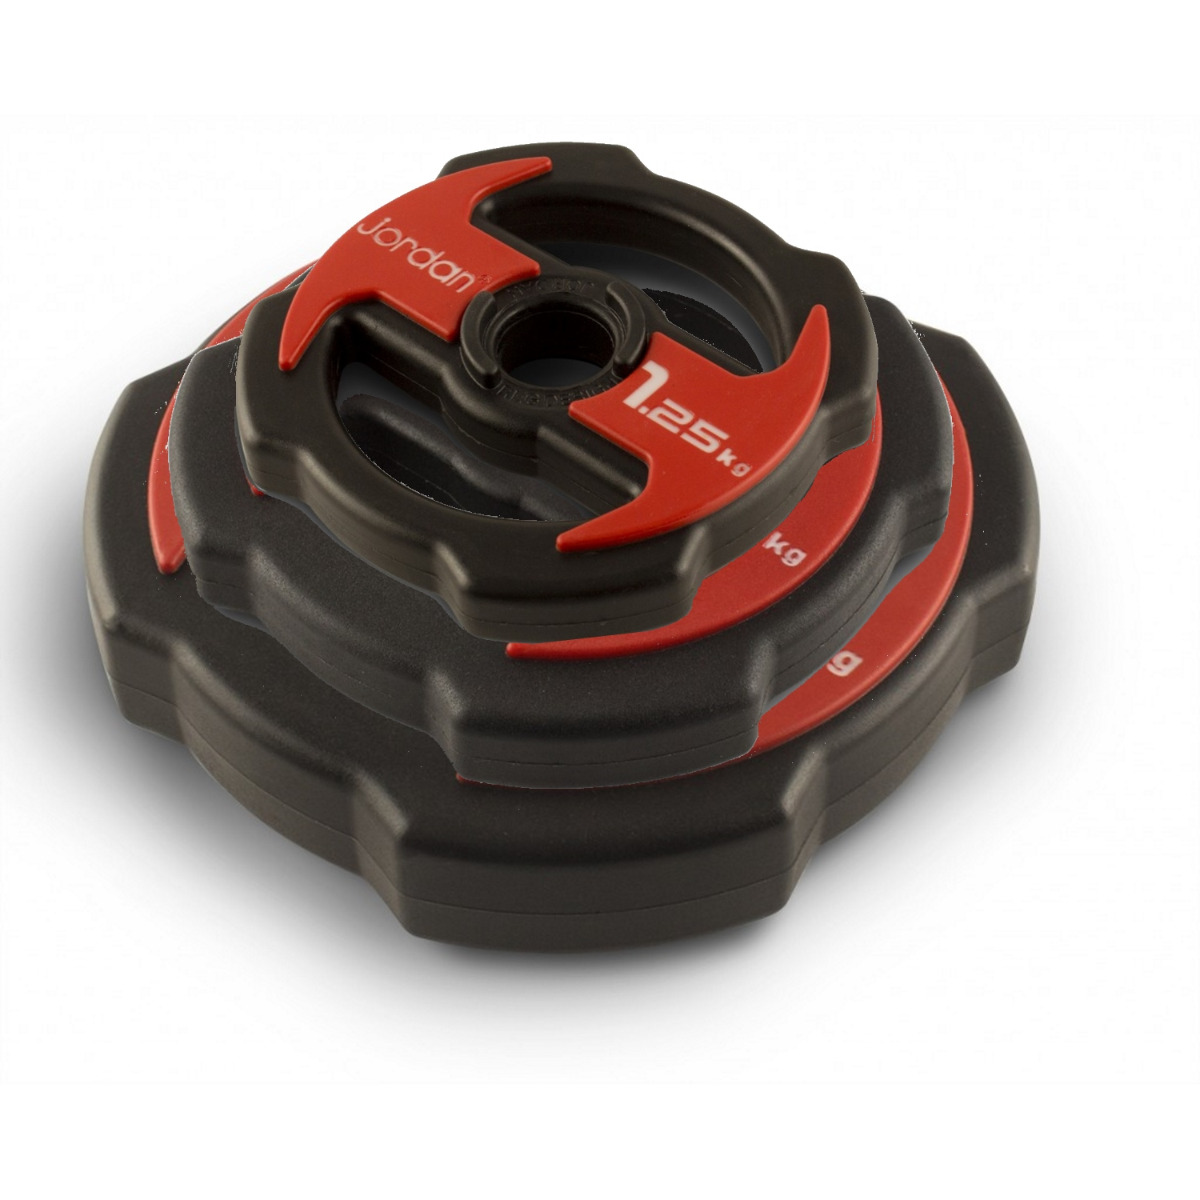 2.5kg Ignite V2 Urethane Studio Barbell Disc - Red/Black